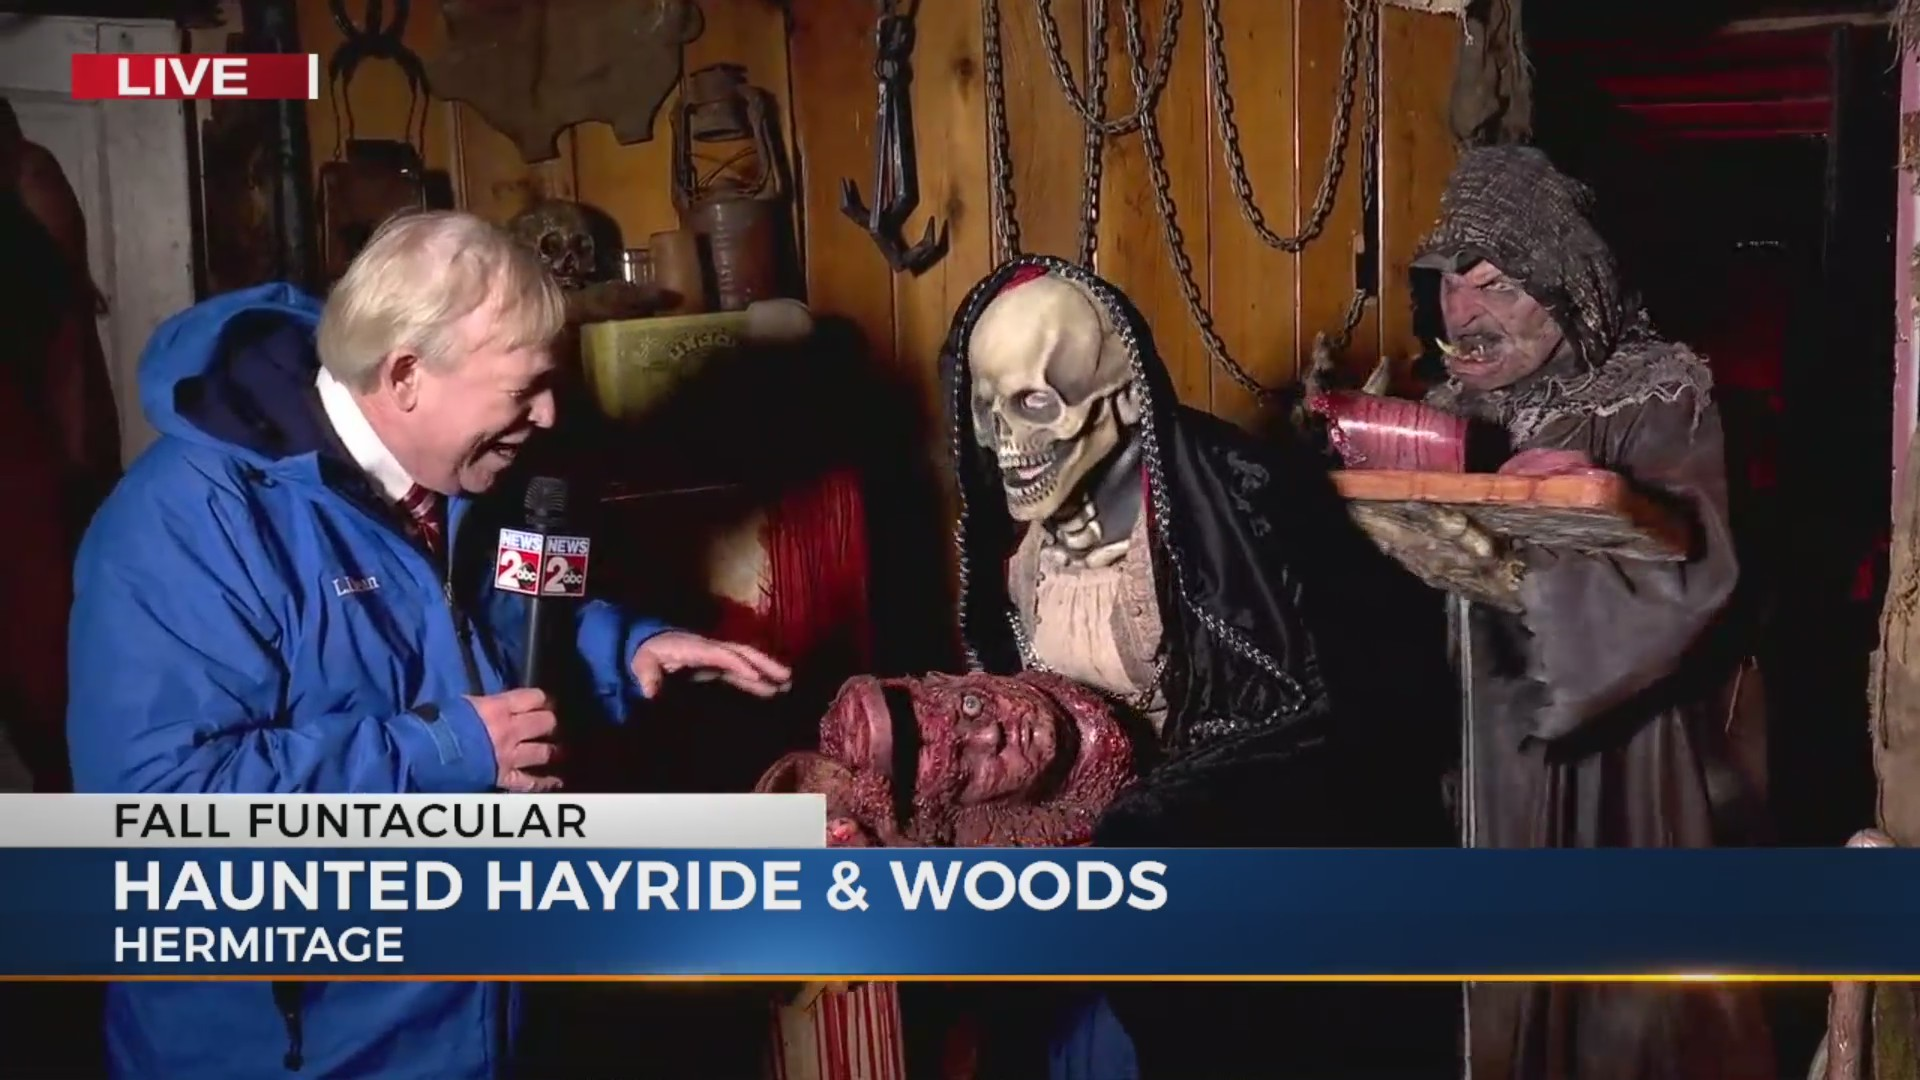 Davis Nolan's Fall Funtacular: Nashville Haunted Hayride & Woods